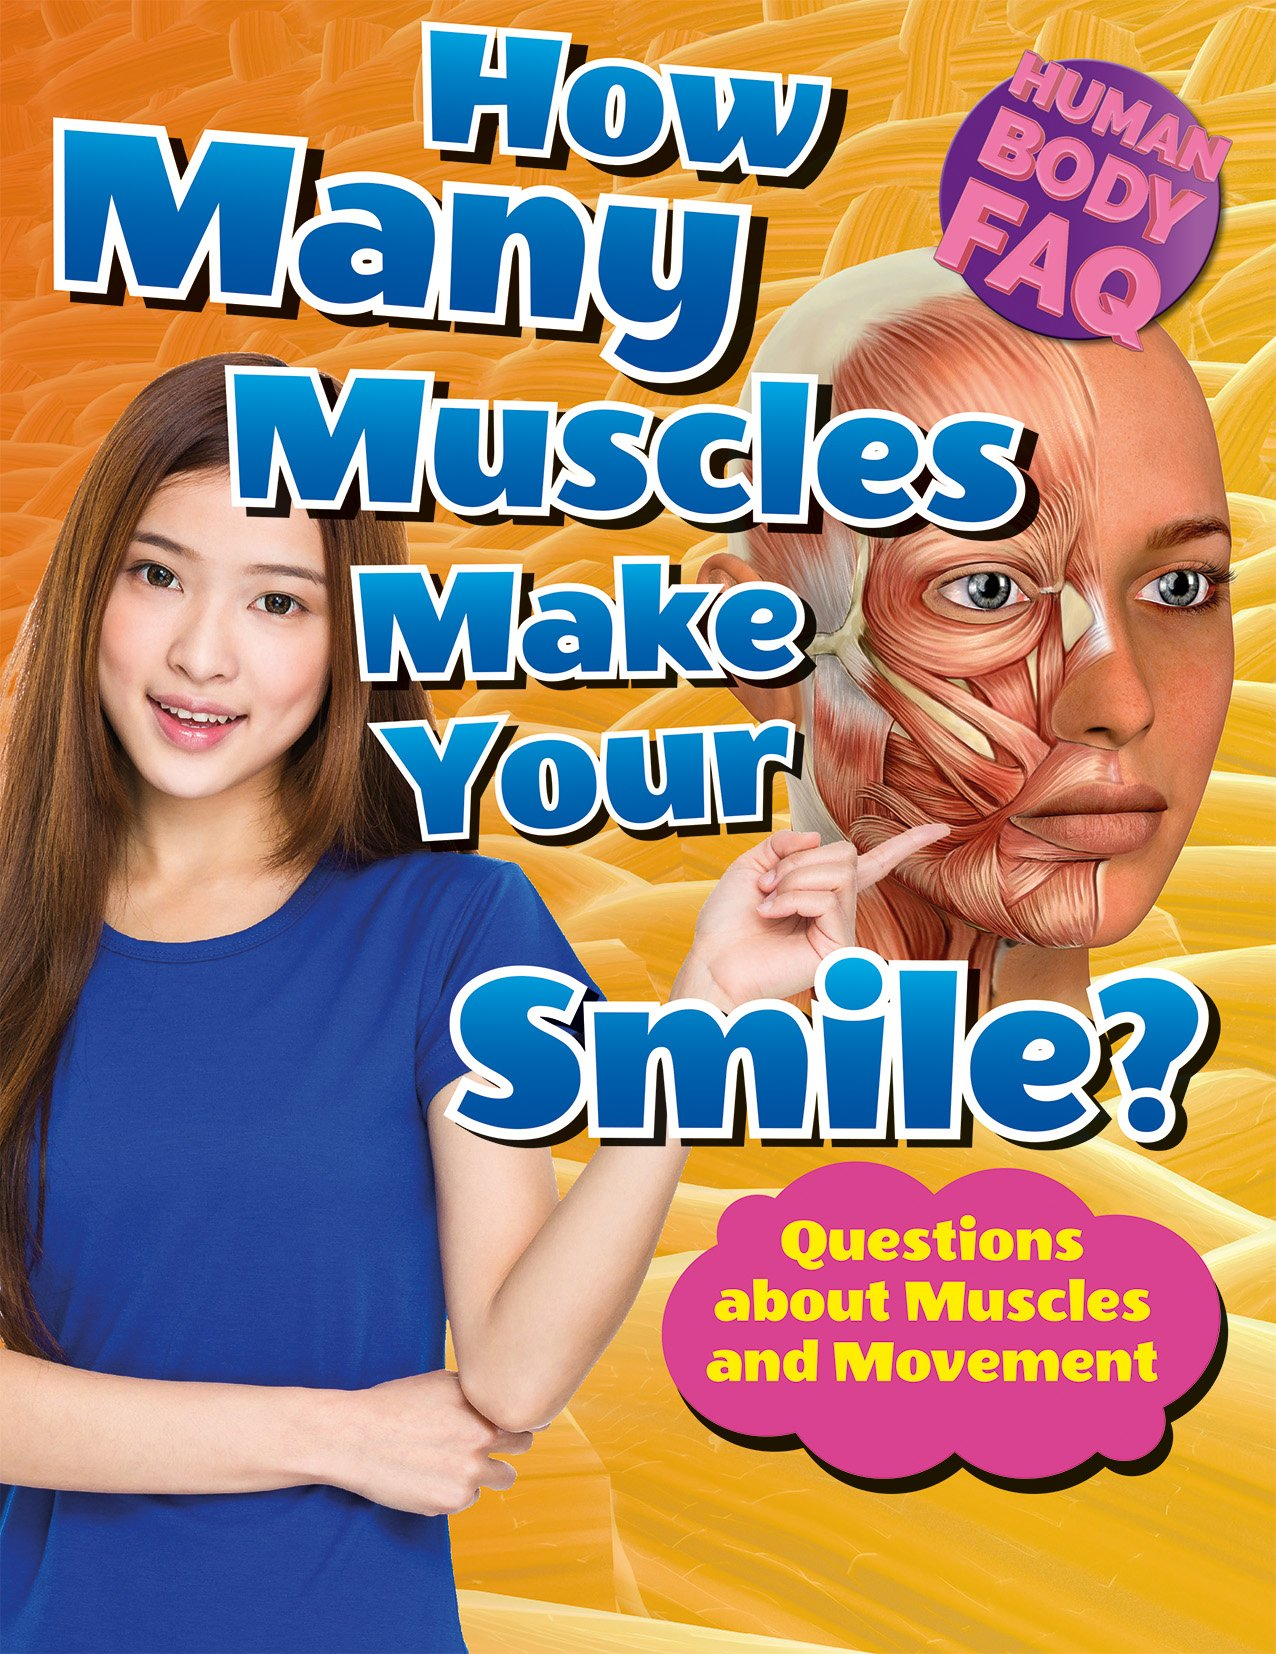 How Many Muscles Make Your Smile?: Questions about Muscles and Movement (Human Body FAQ)